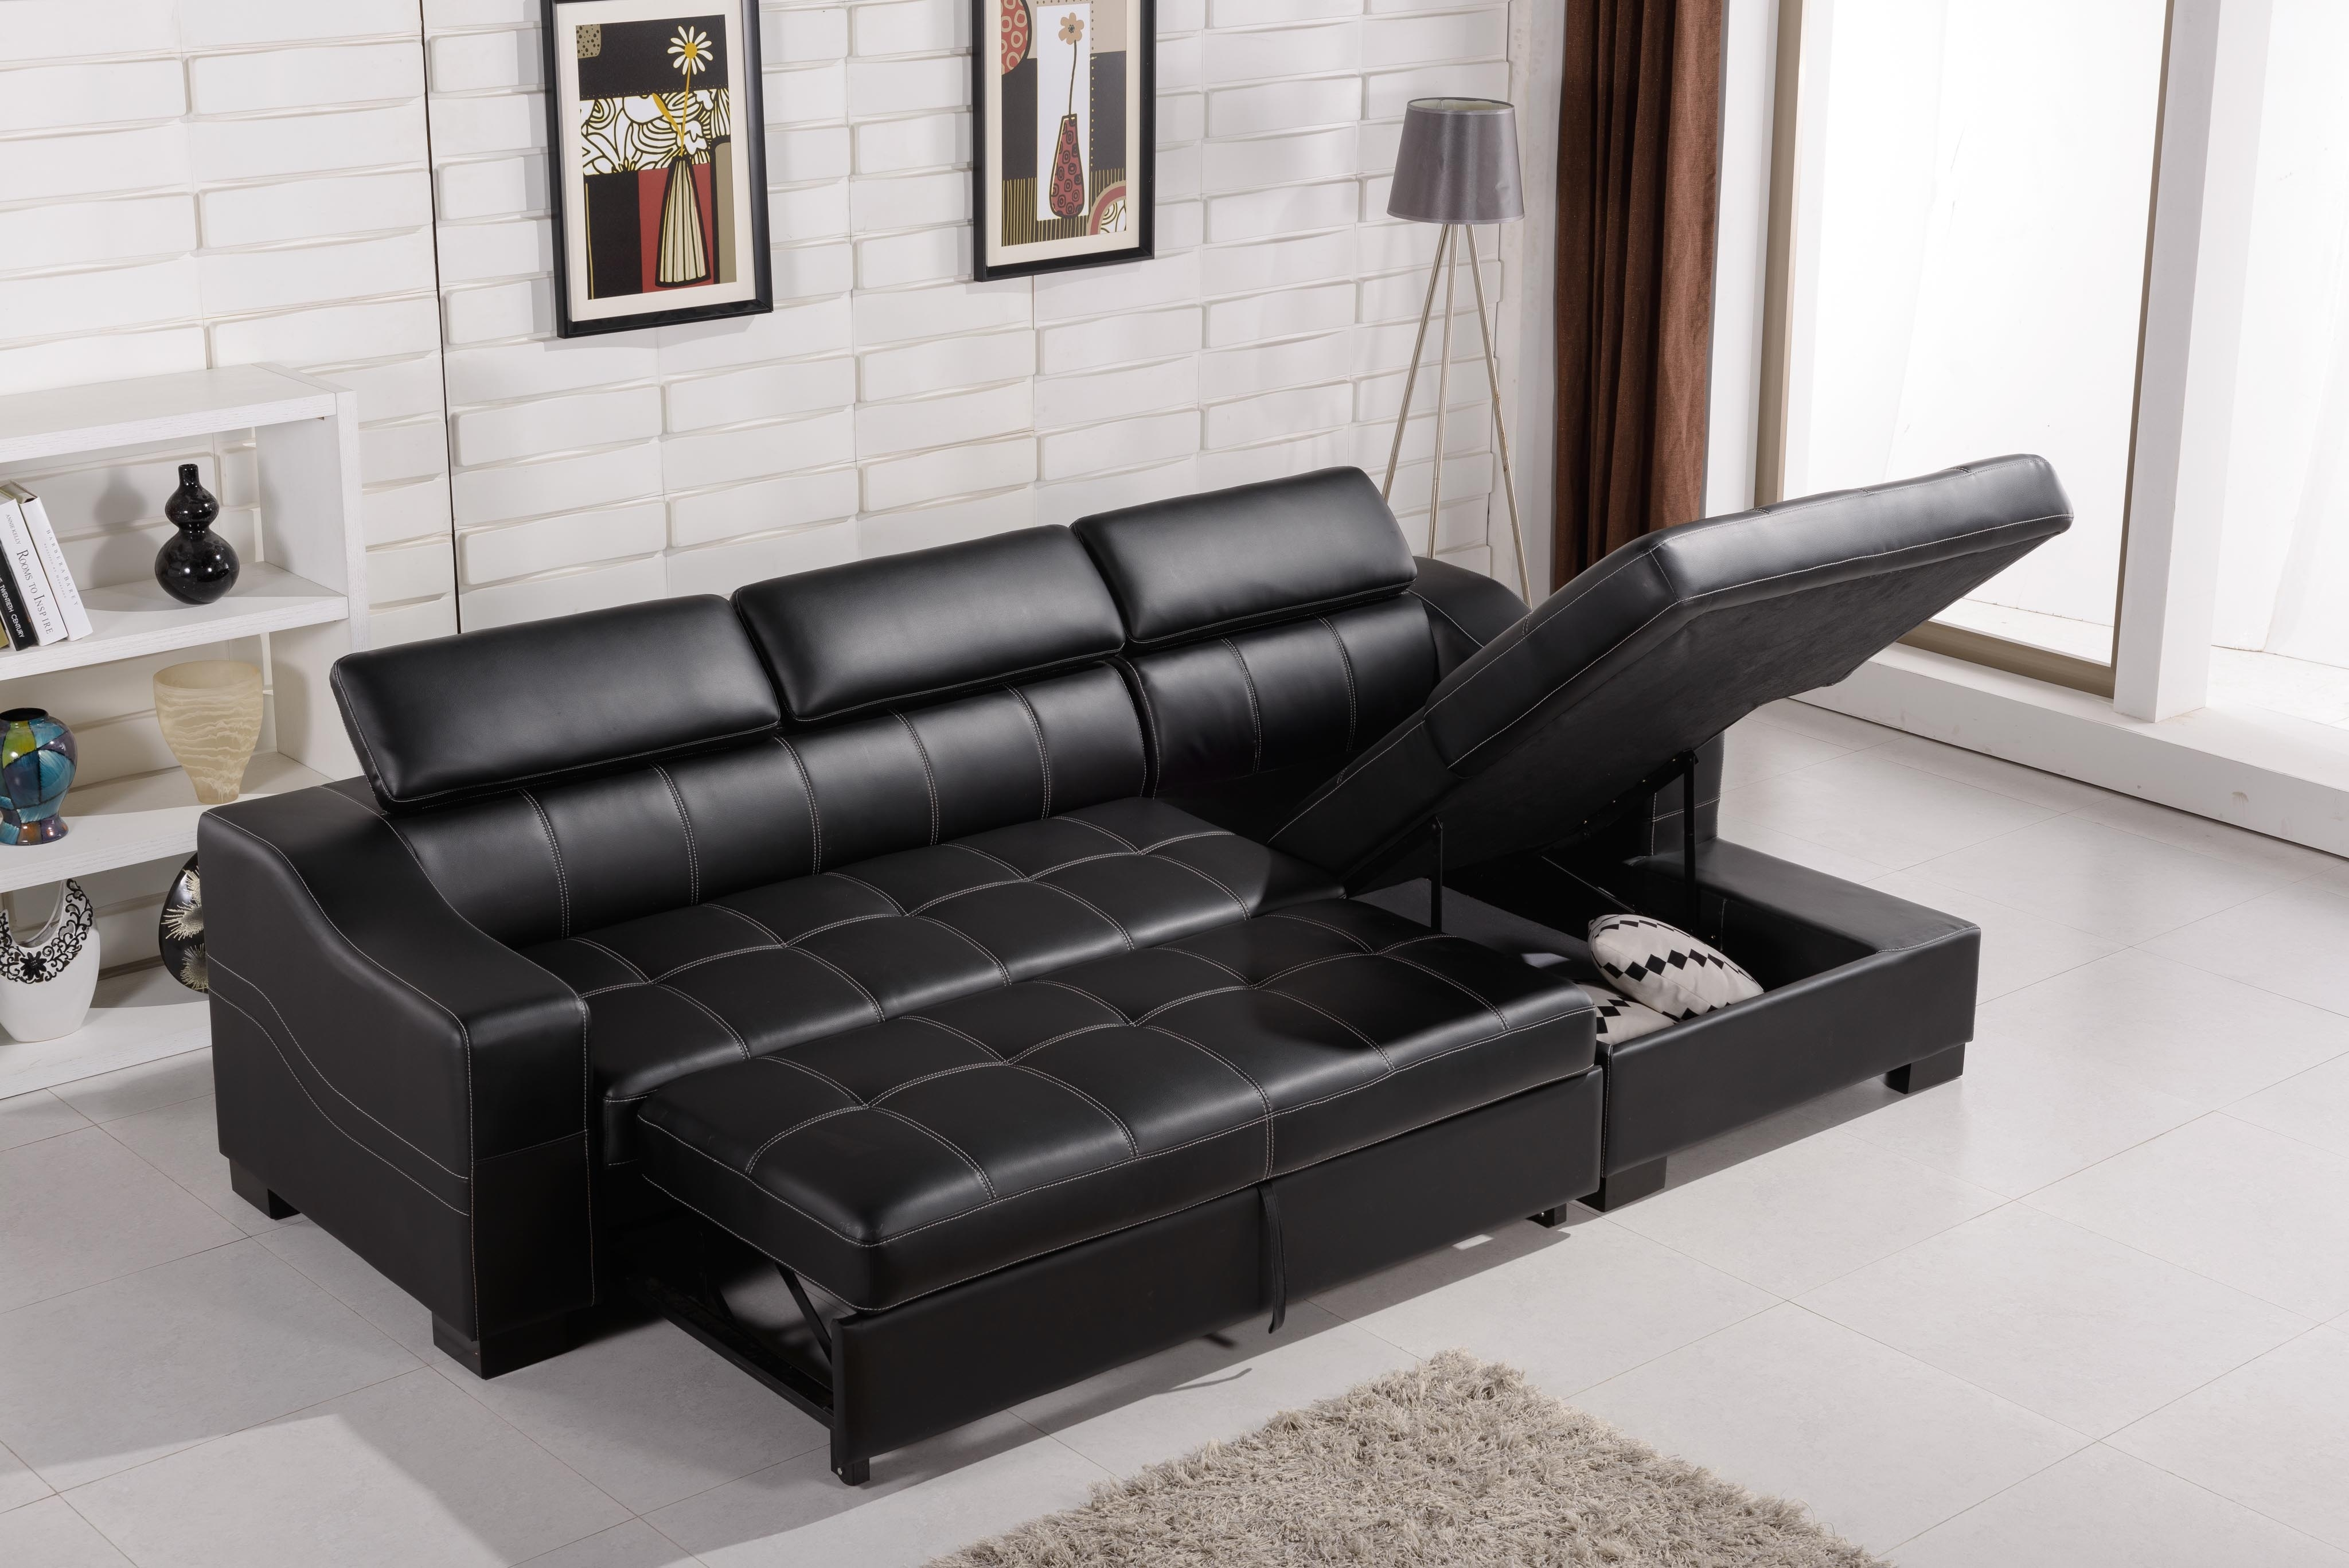 The Best Fashionable Design White Faux Leather Sectional Corner Of In Leather Sofas With Storage (Image 10 of 10)